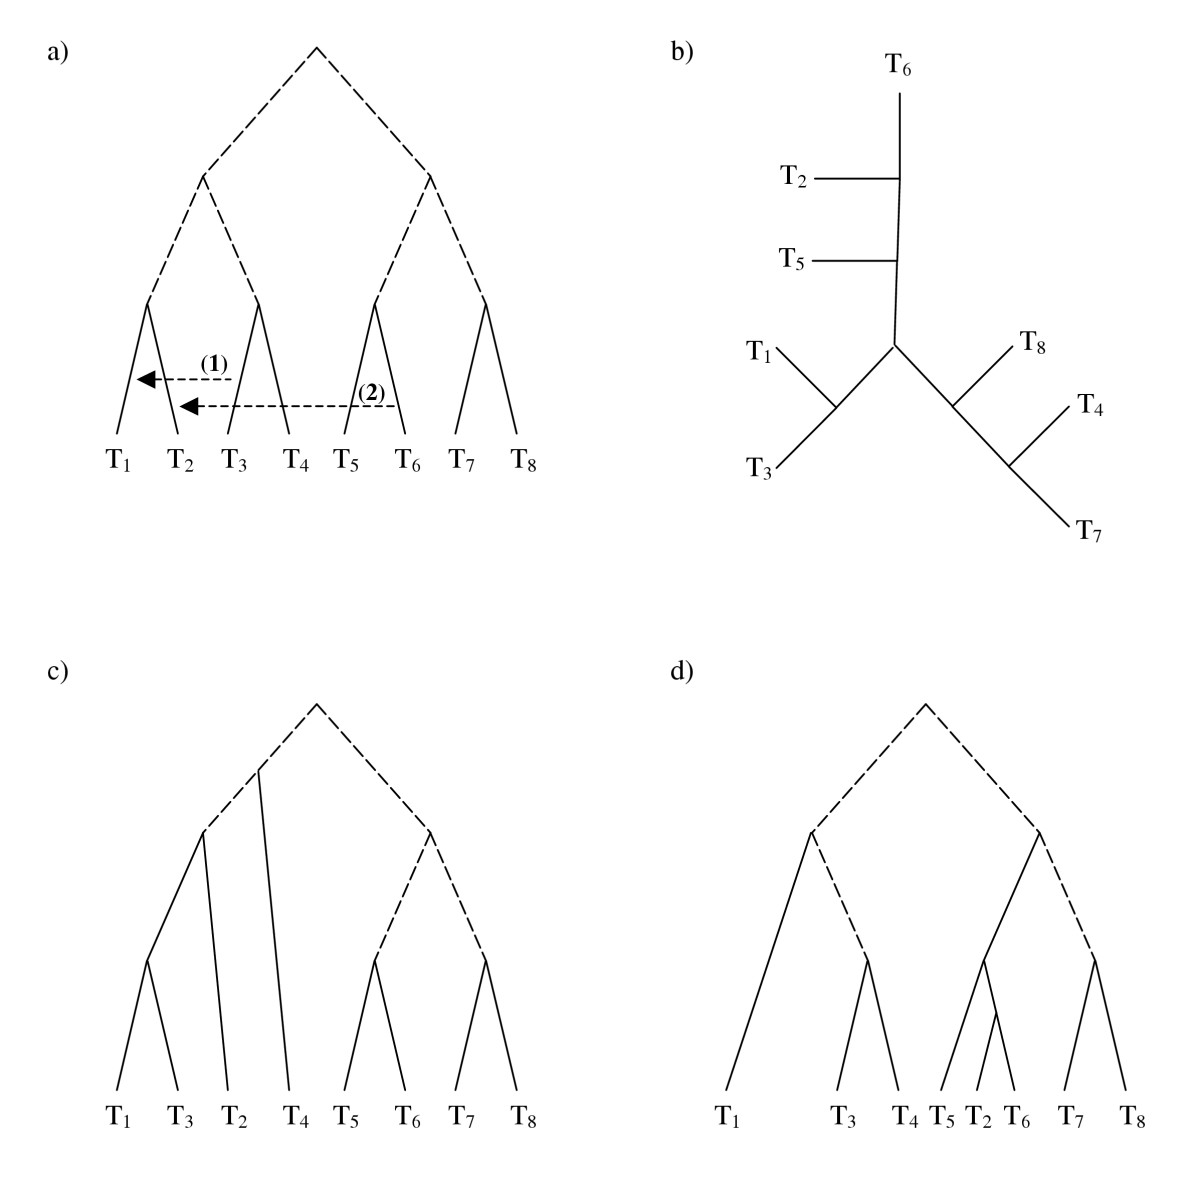 http://static-content.springer.com/image/art%3A10.1186%2F1471-2148-6-15/MediaObjects/12862_2005_Article_200_Fig9_HTML.jpg